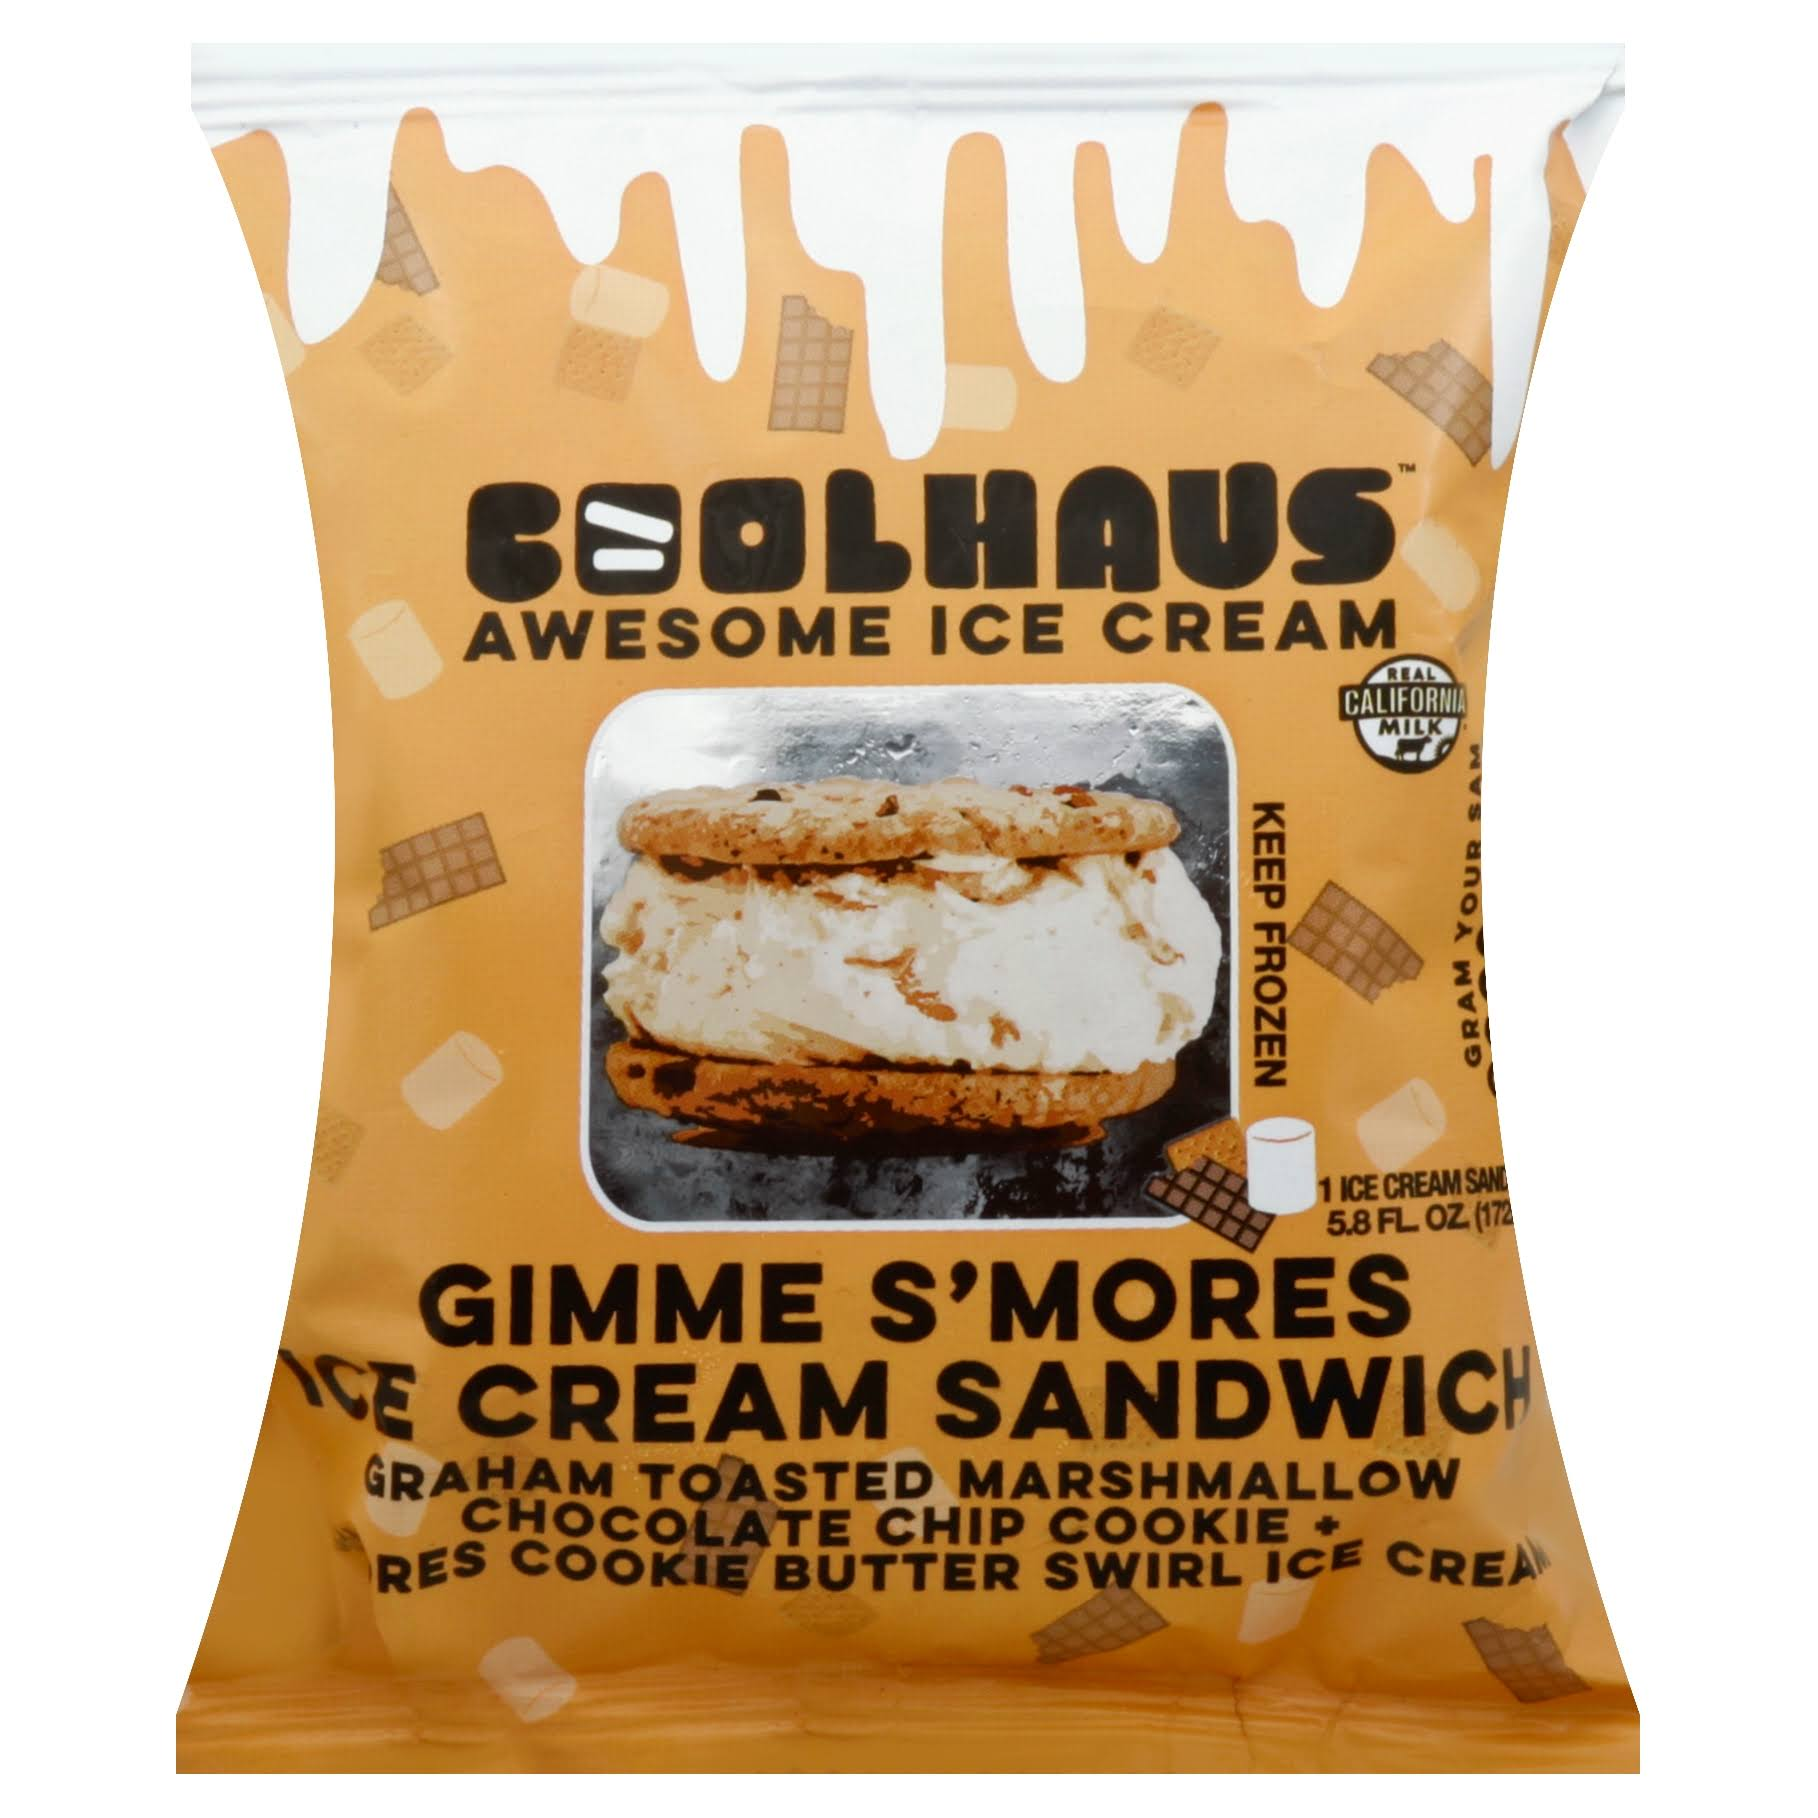 CoolHaus Ice Cream Sandwich, Gimme S'Mores - 5.8 fl oz